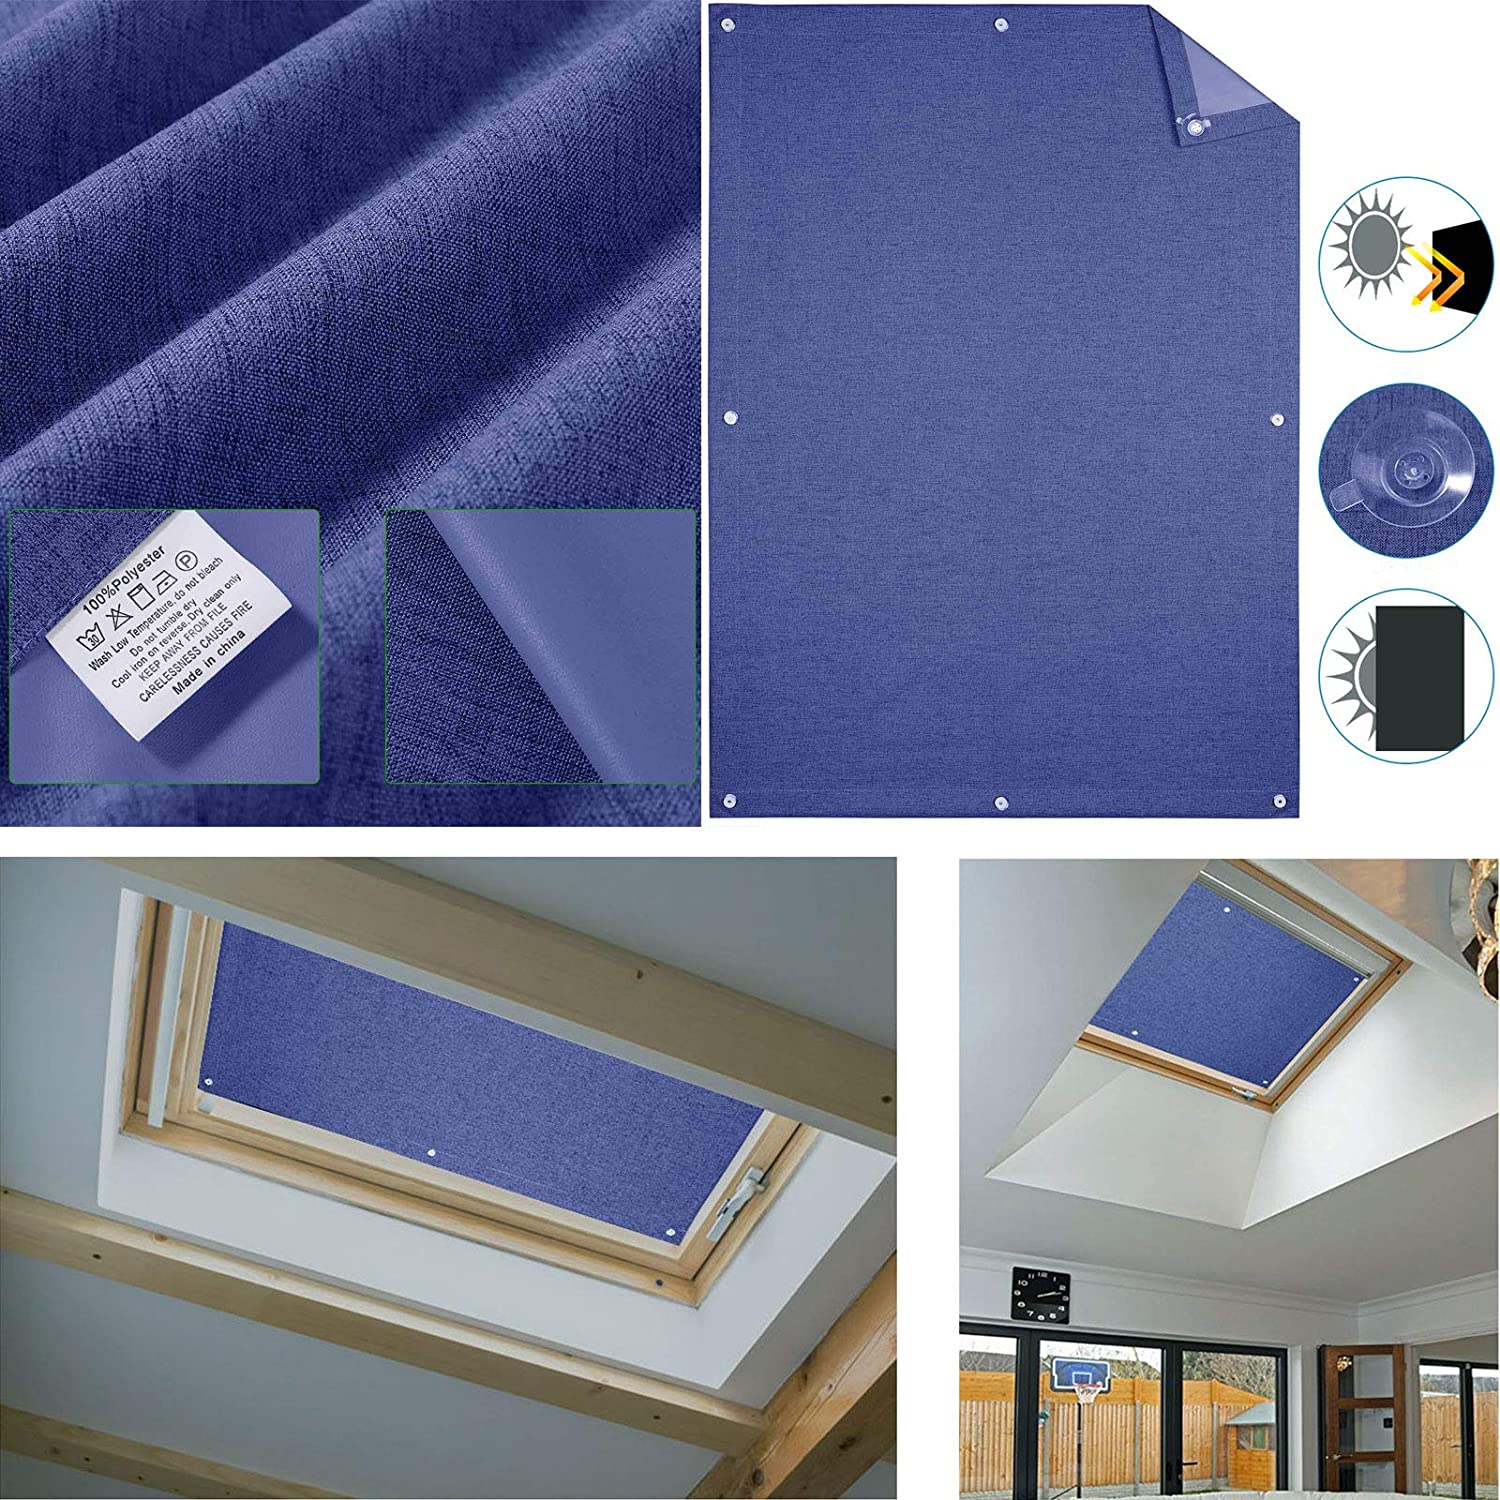 HDM 96 Windows Balcony 93cm Dark Gray Roof Window Roller Blinds Blackout Blind Sun /& Visual Protection for Velux roof Windows